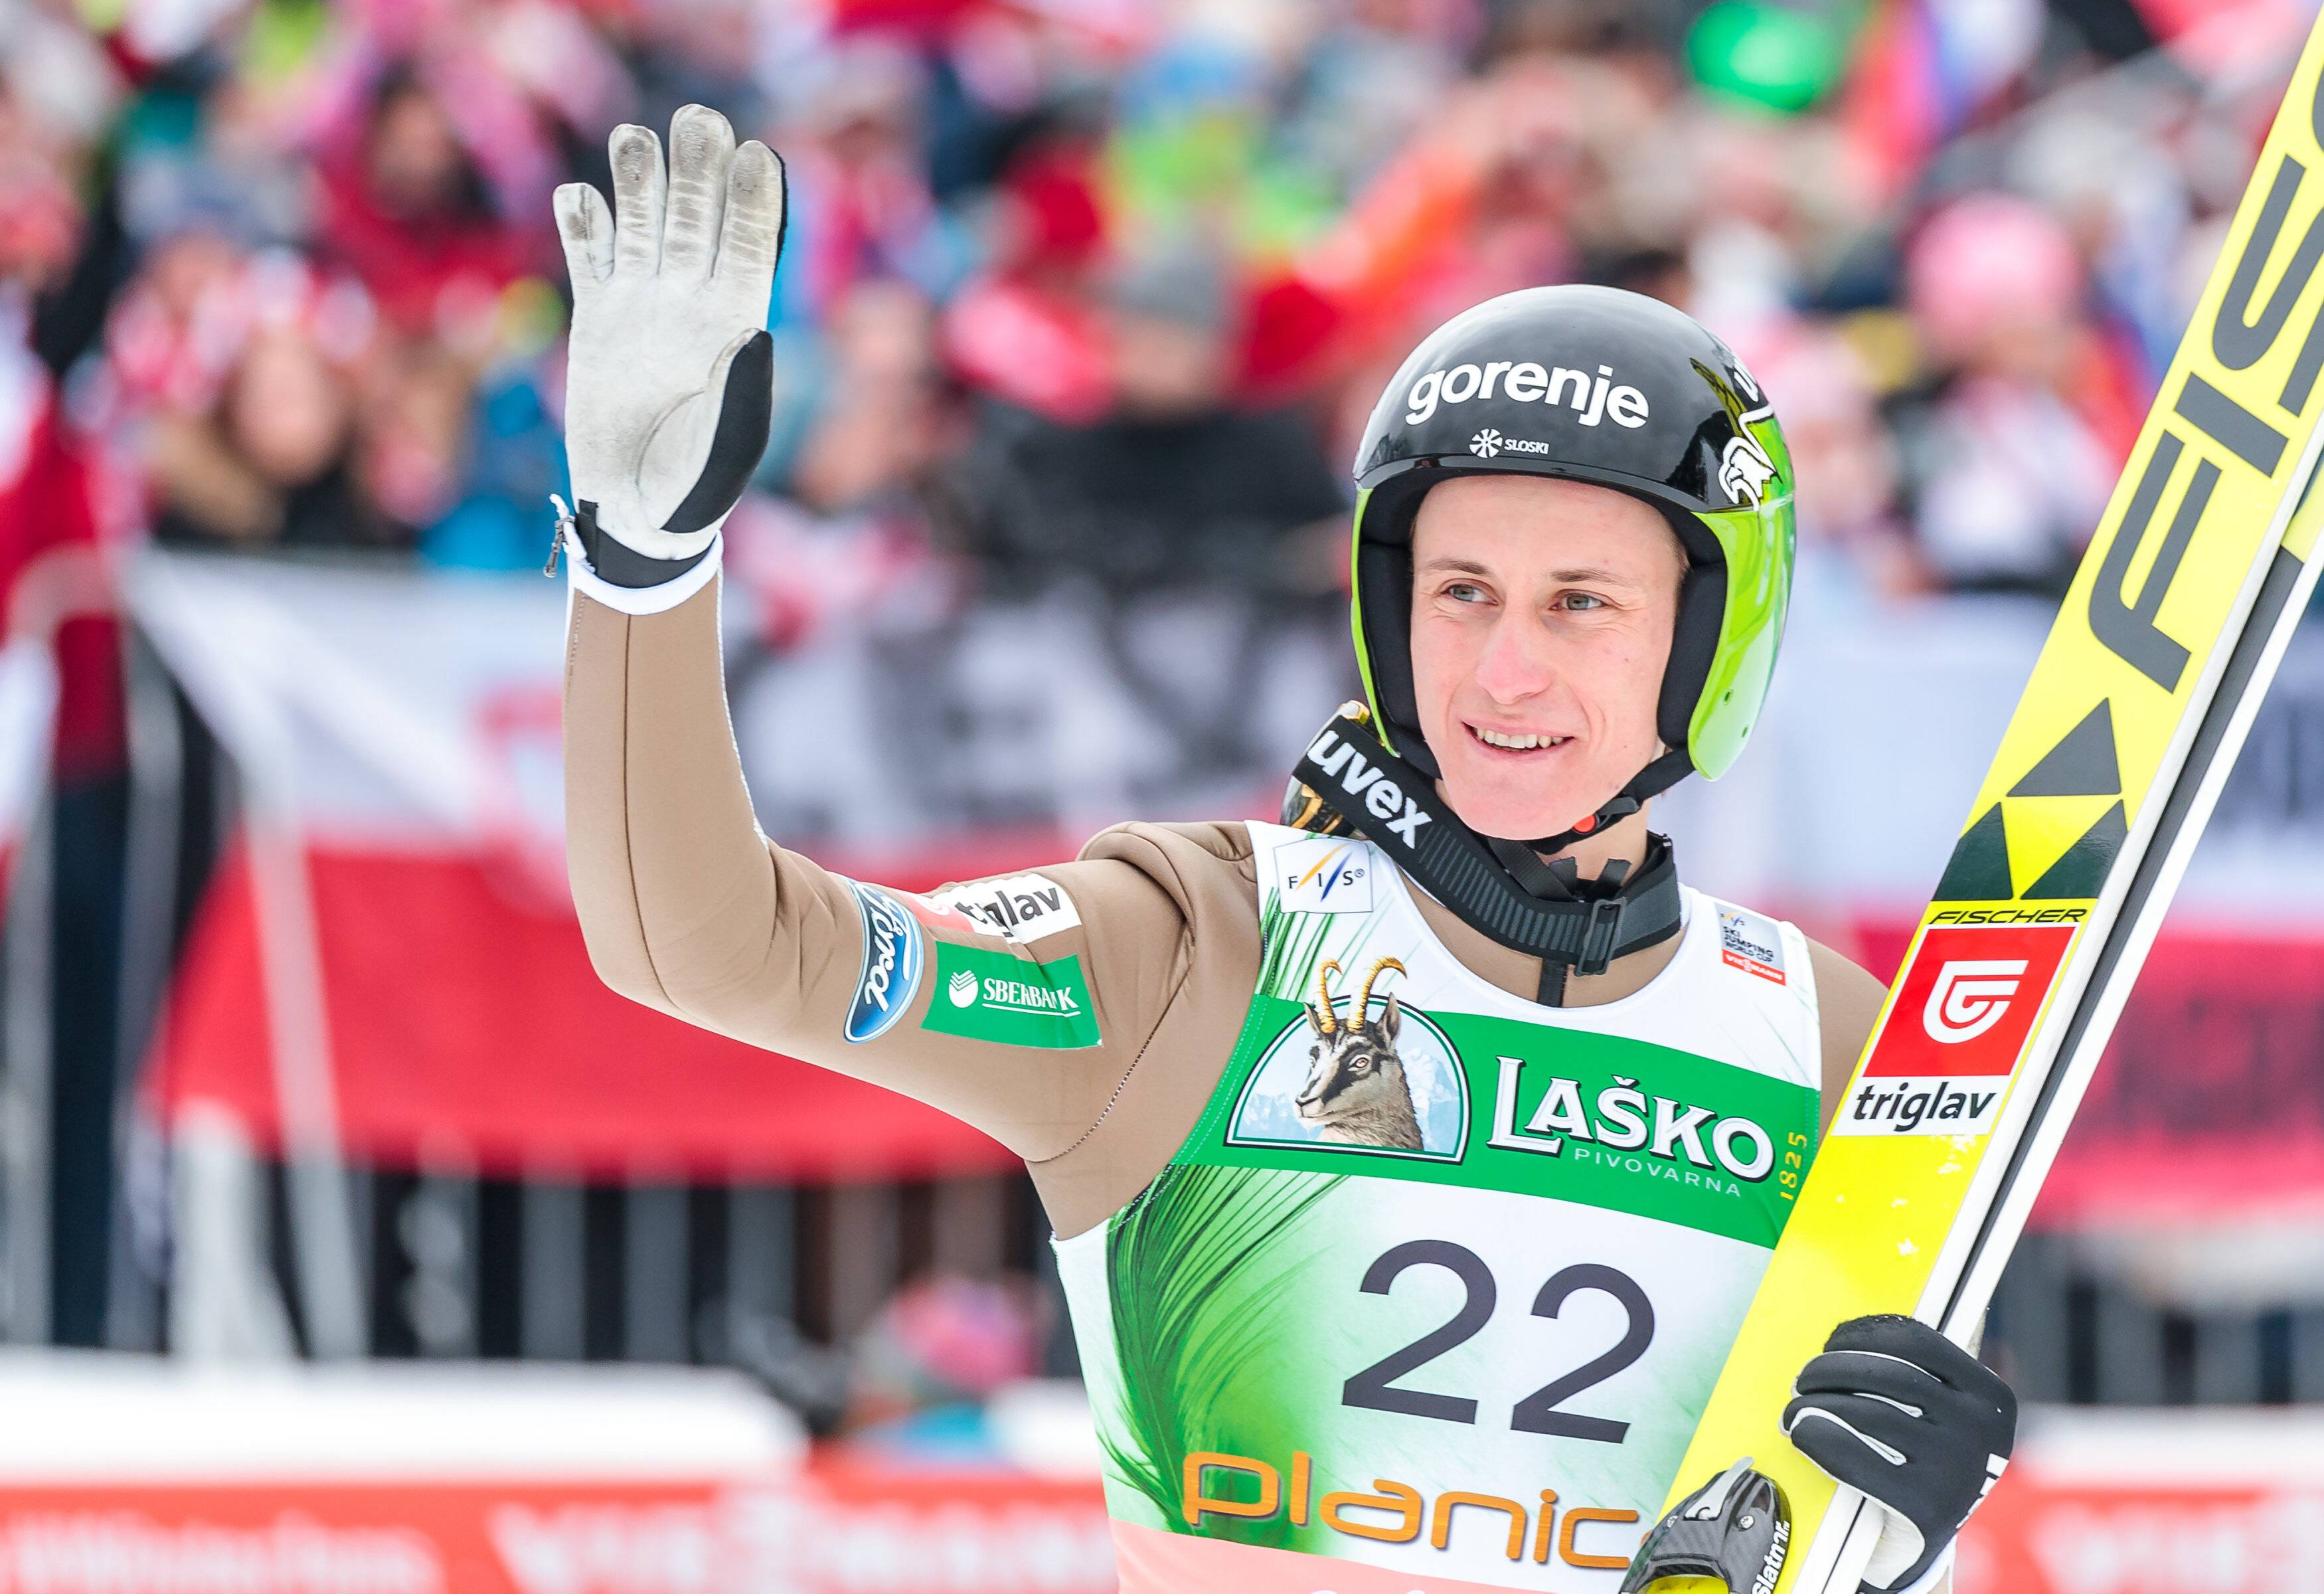 Top 10: These are the most successful Nordic ski stars on